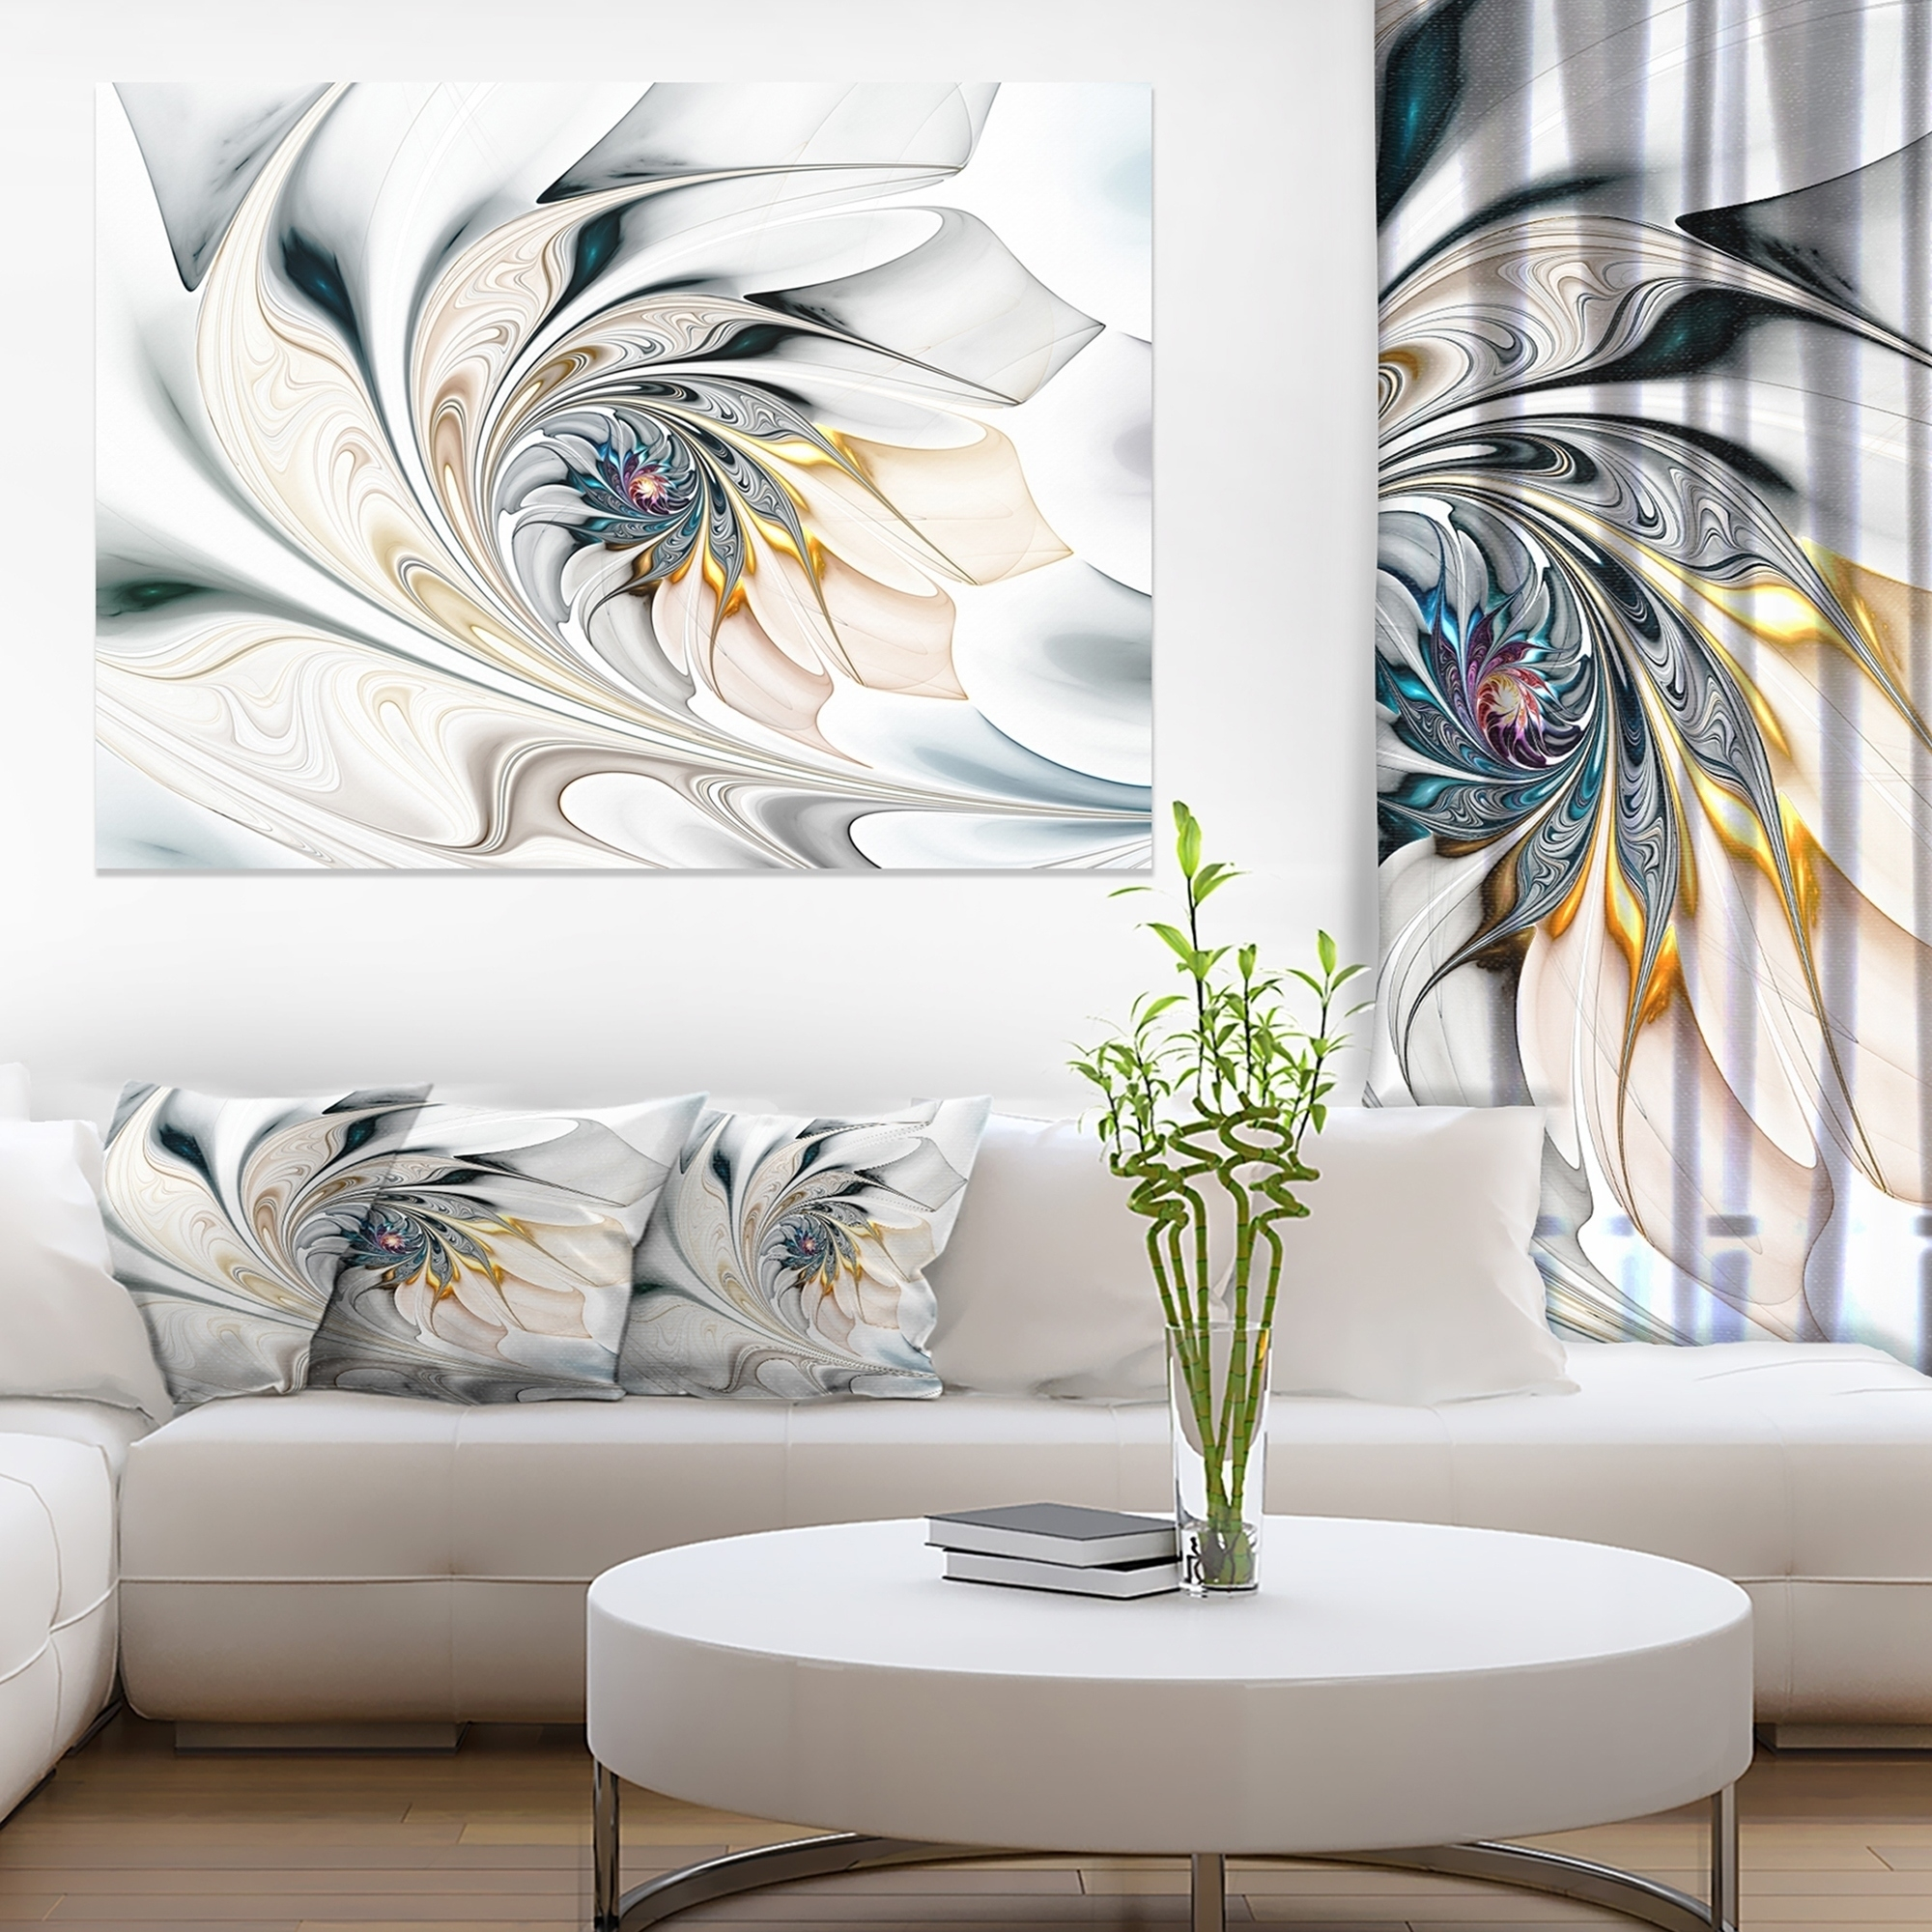 Shop White Stained Glass Floral Art – Large Floral Wall Art Canvas For Recent Stained Glass Wall Art (View 15 of 20)